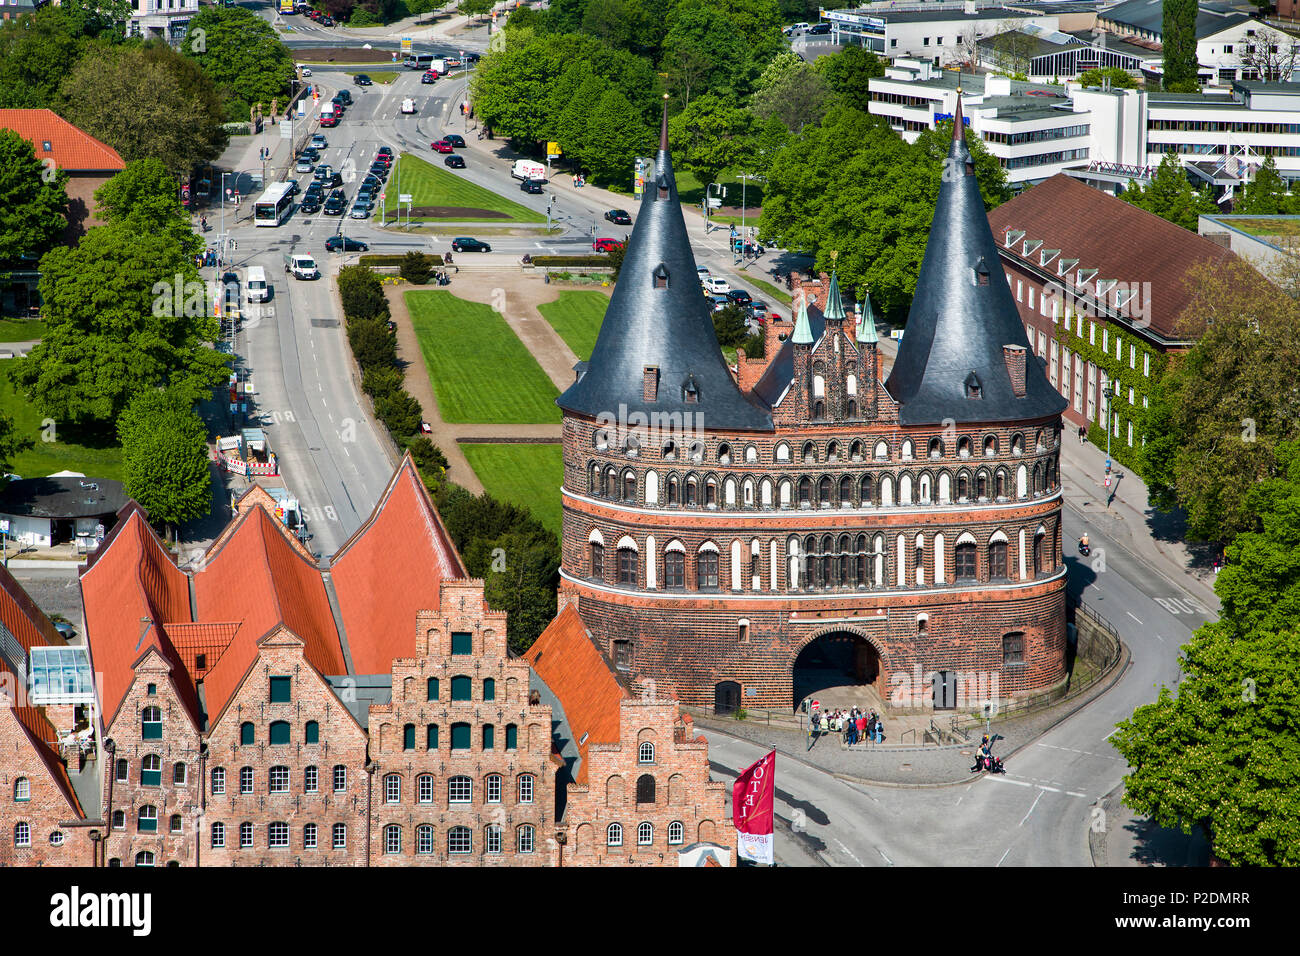 View towards the city gate Holstentor, Hanseatic City, Luebeck, Schleswig-Holstein, Germany - Stock Image